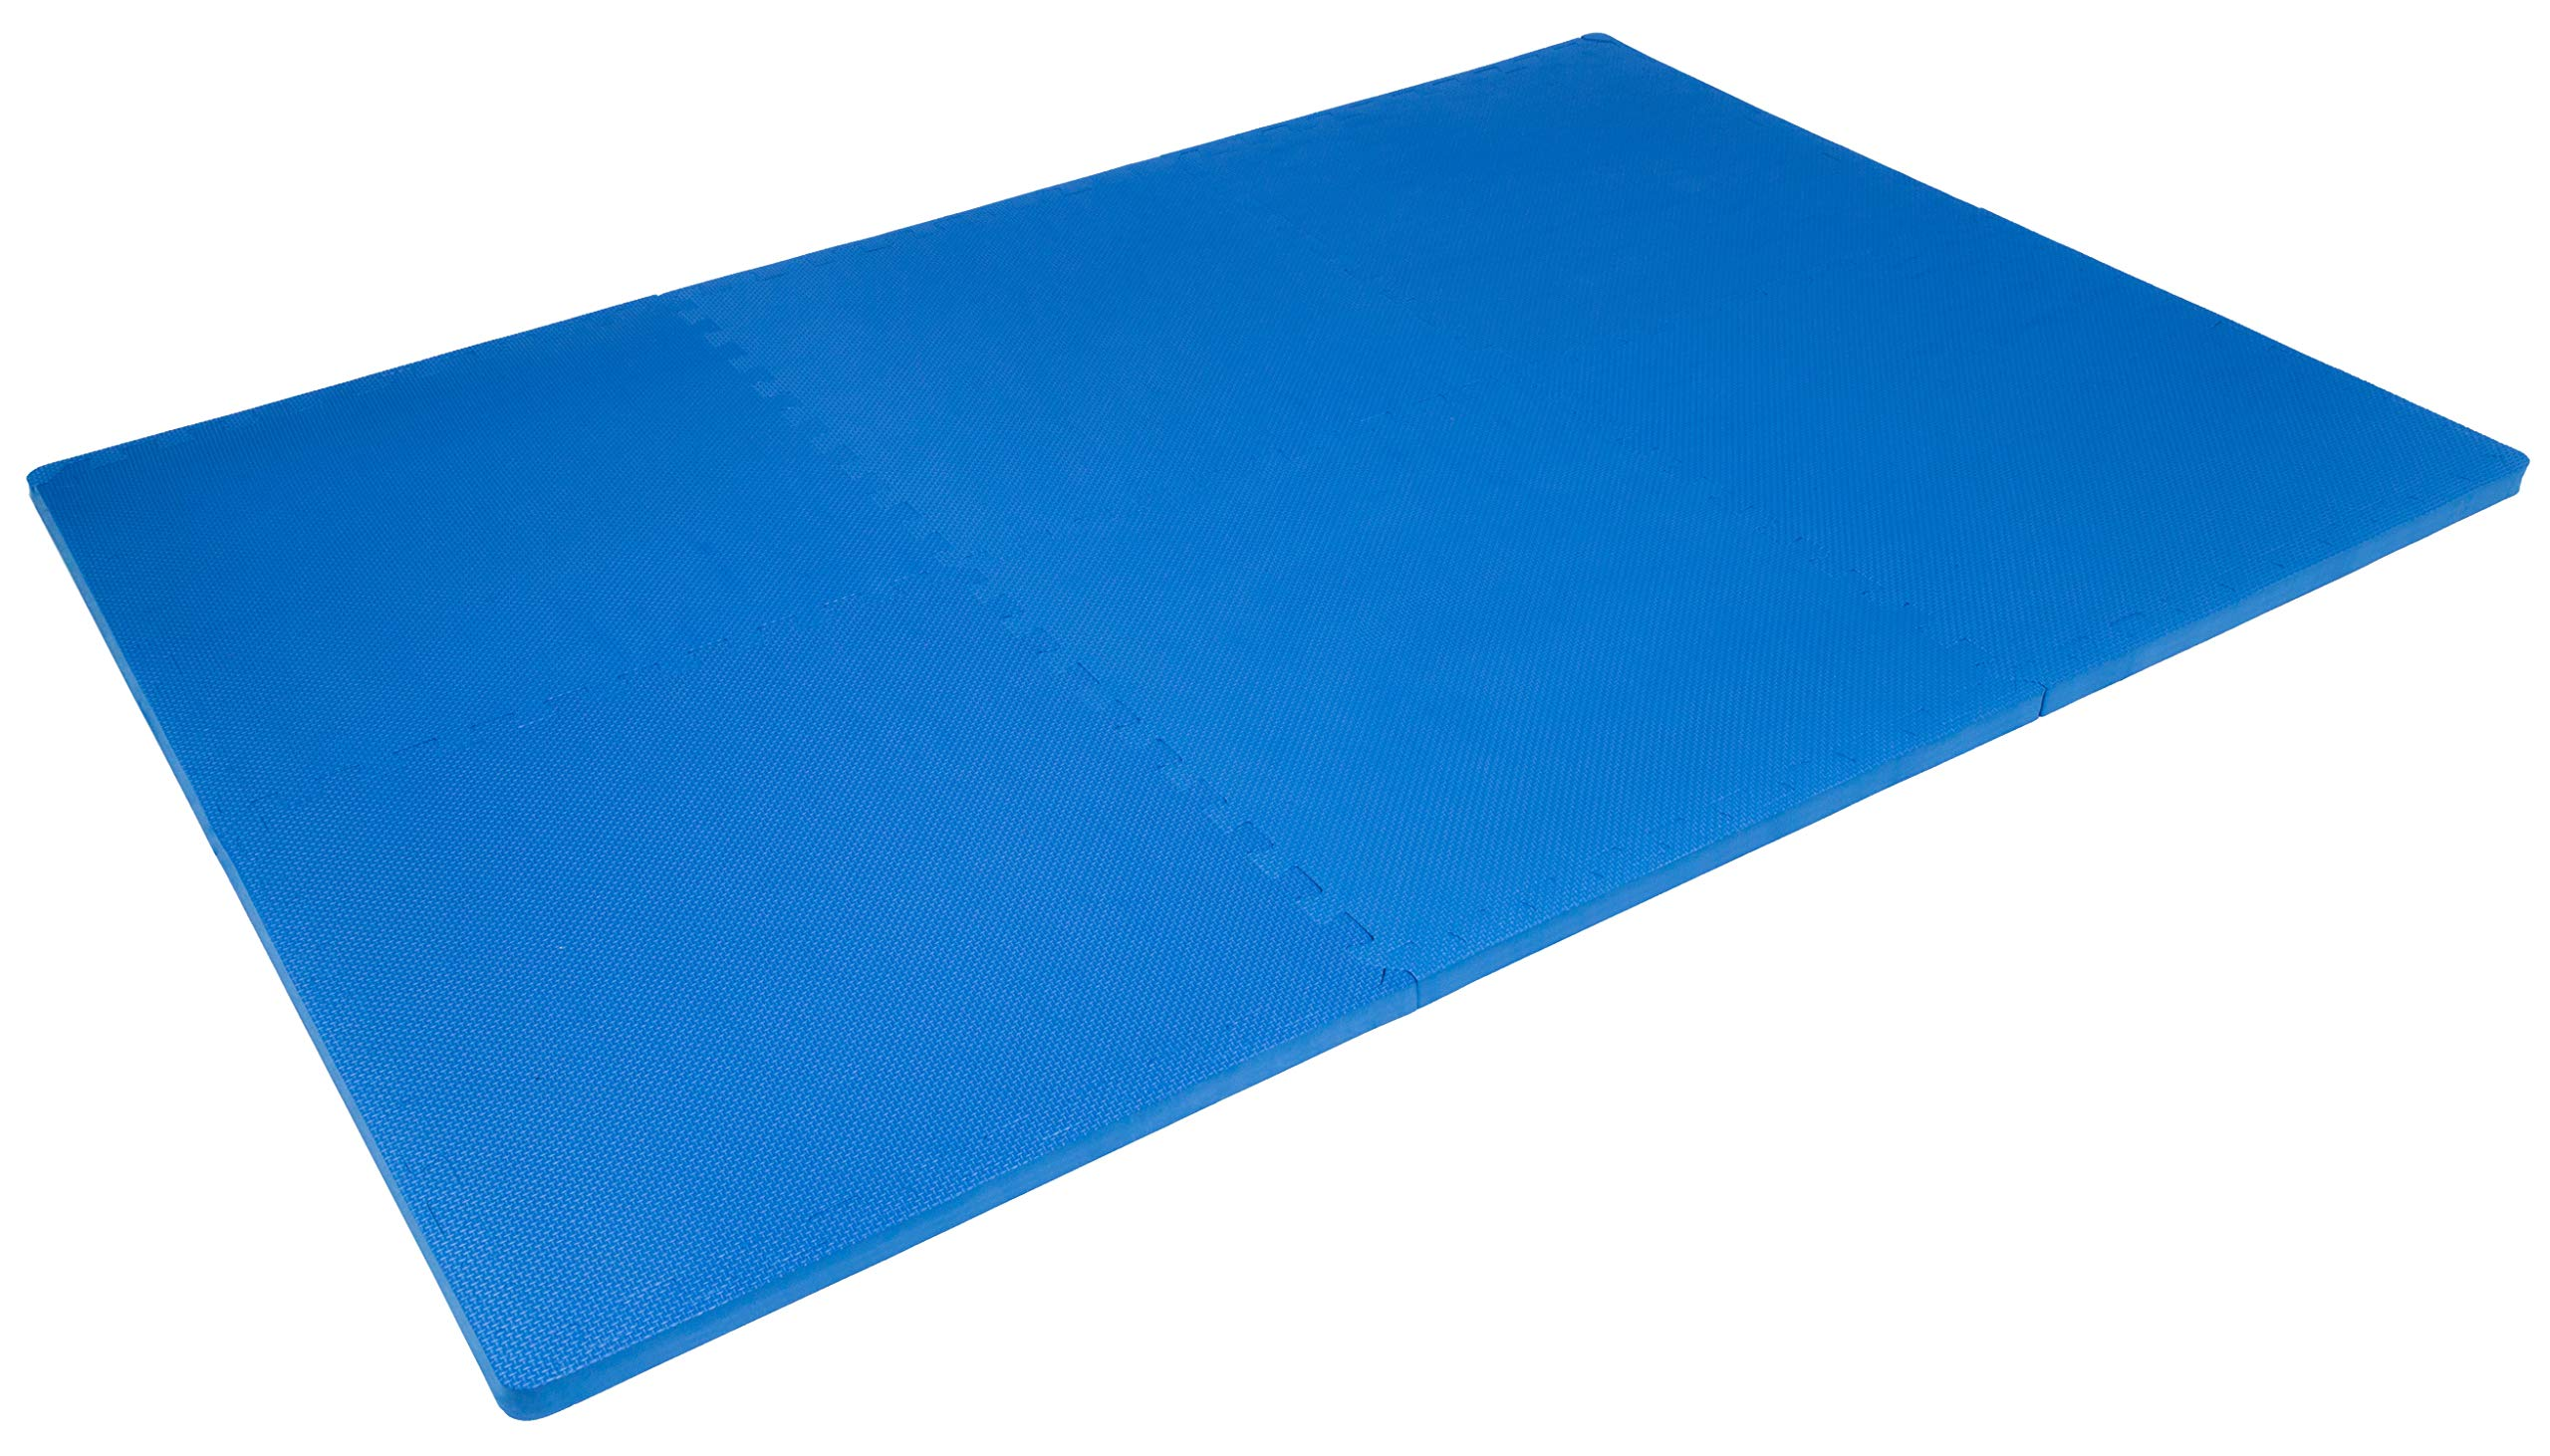 """Prosource Fit Extra Thick Puzzle Exercise Mat 1"""", EVA Foam Interlocking Tiles for Protective, Cushioned Workout Flooring for Home and Gym Equipment, Blue by ProsourceFit (Image #4)"""